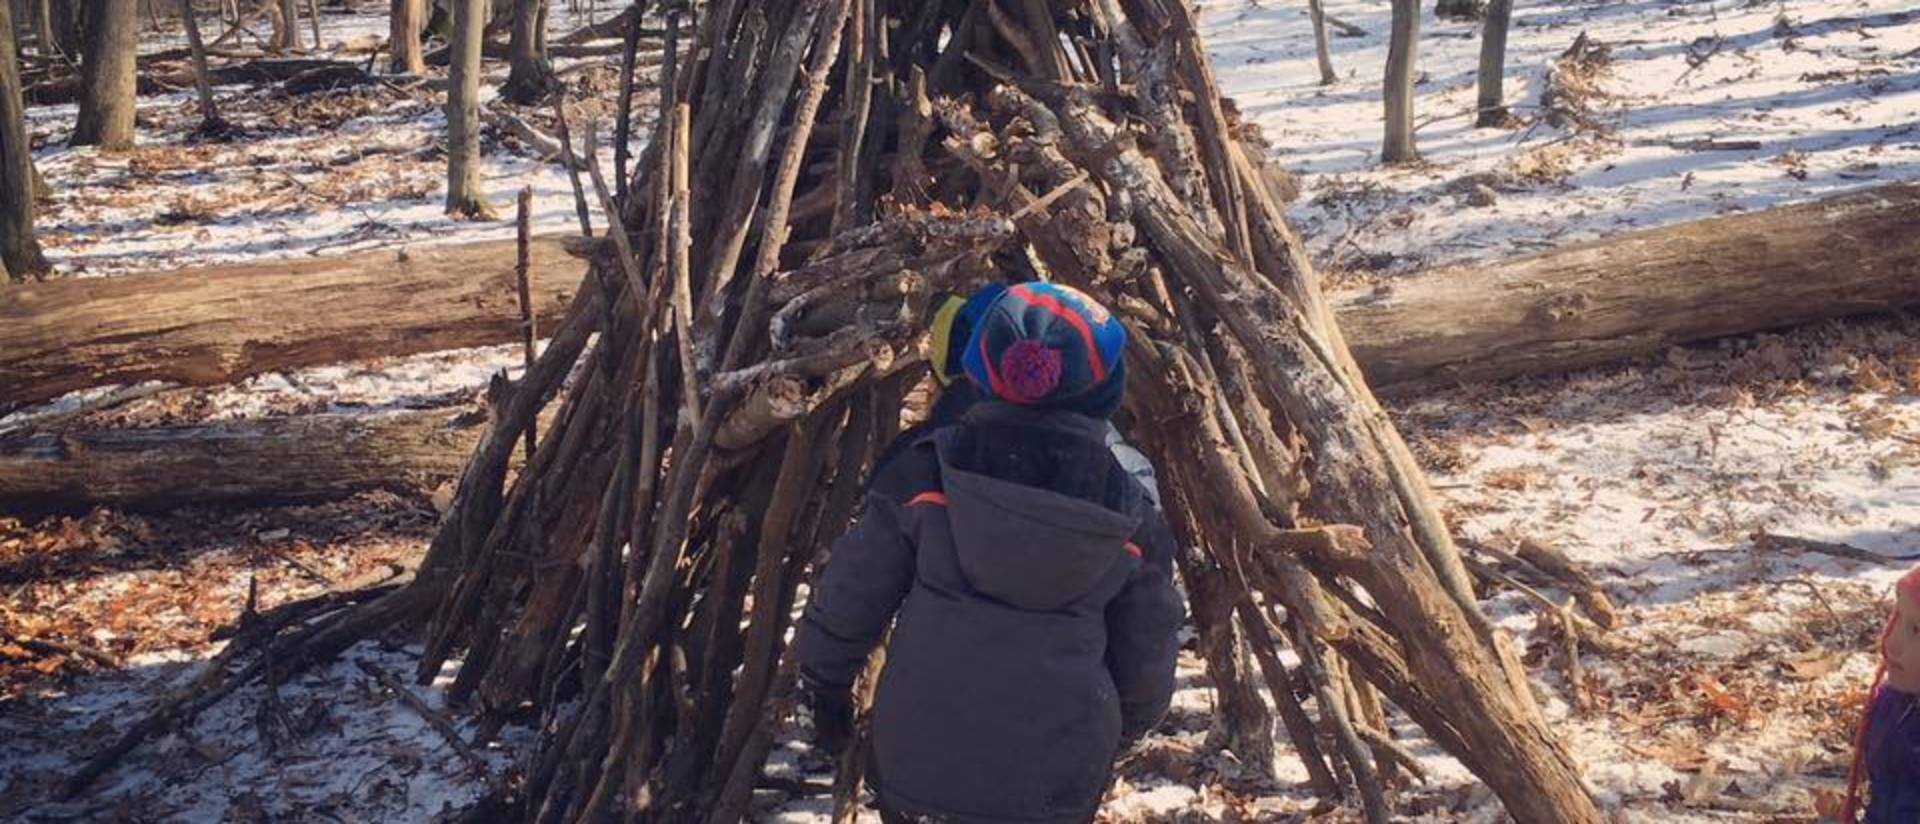 Kids at the children's nature academy building a fort